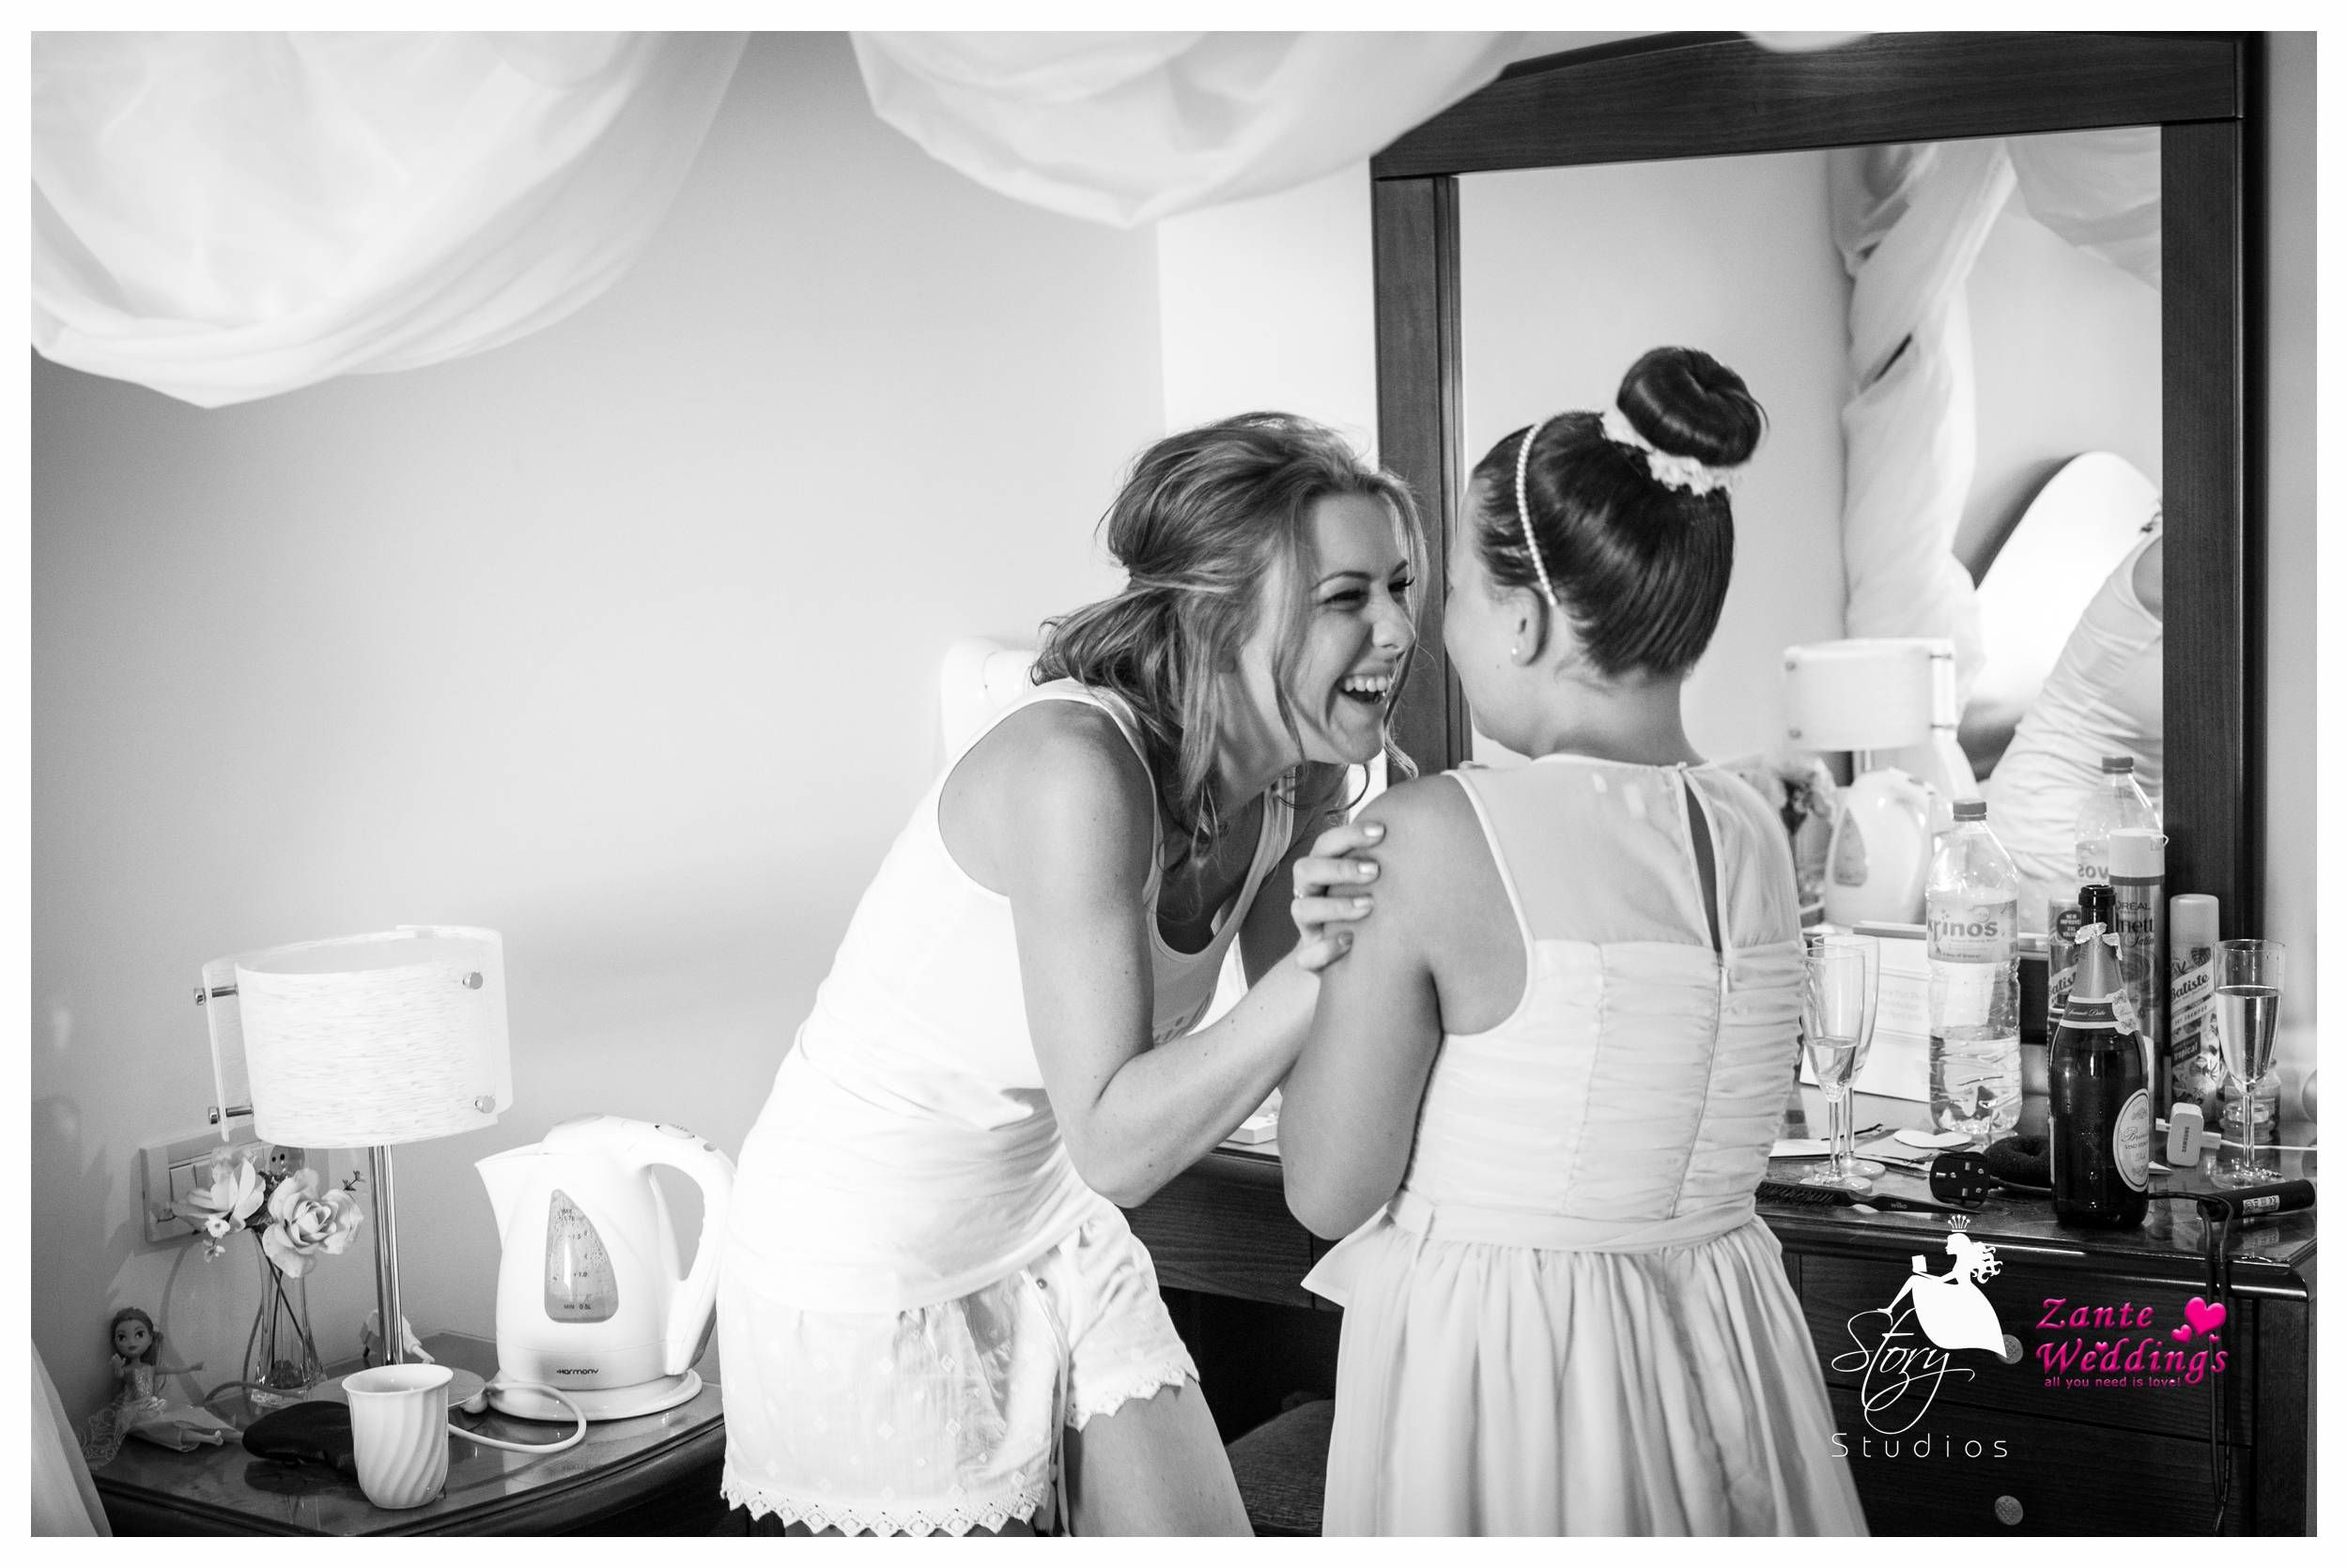 A lovely moment between the bride and her flower girl